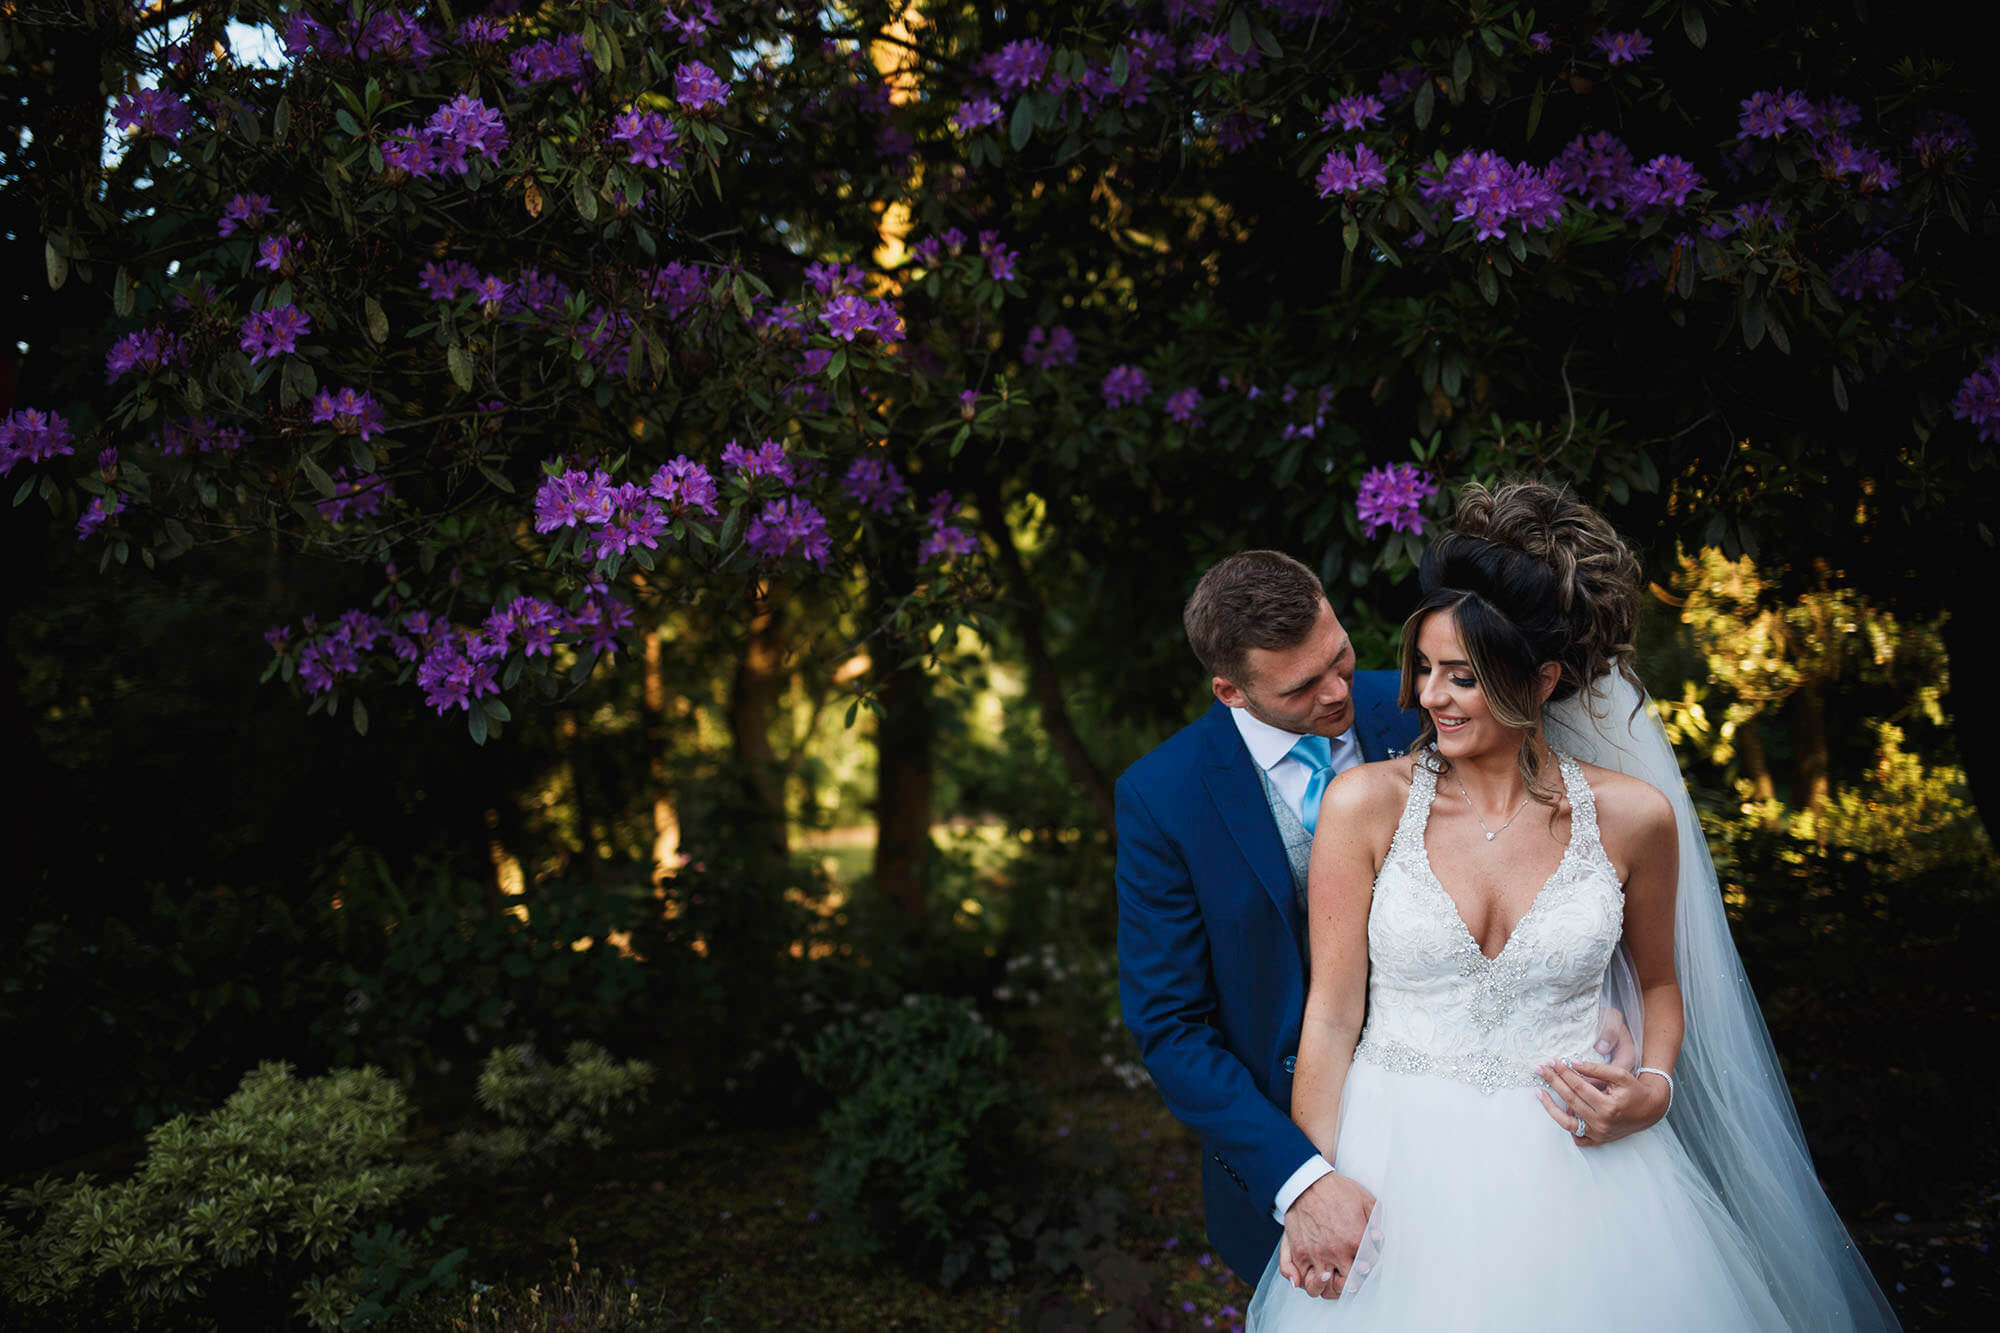 hugging near purple flowers in wedding dress